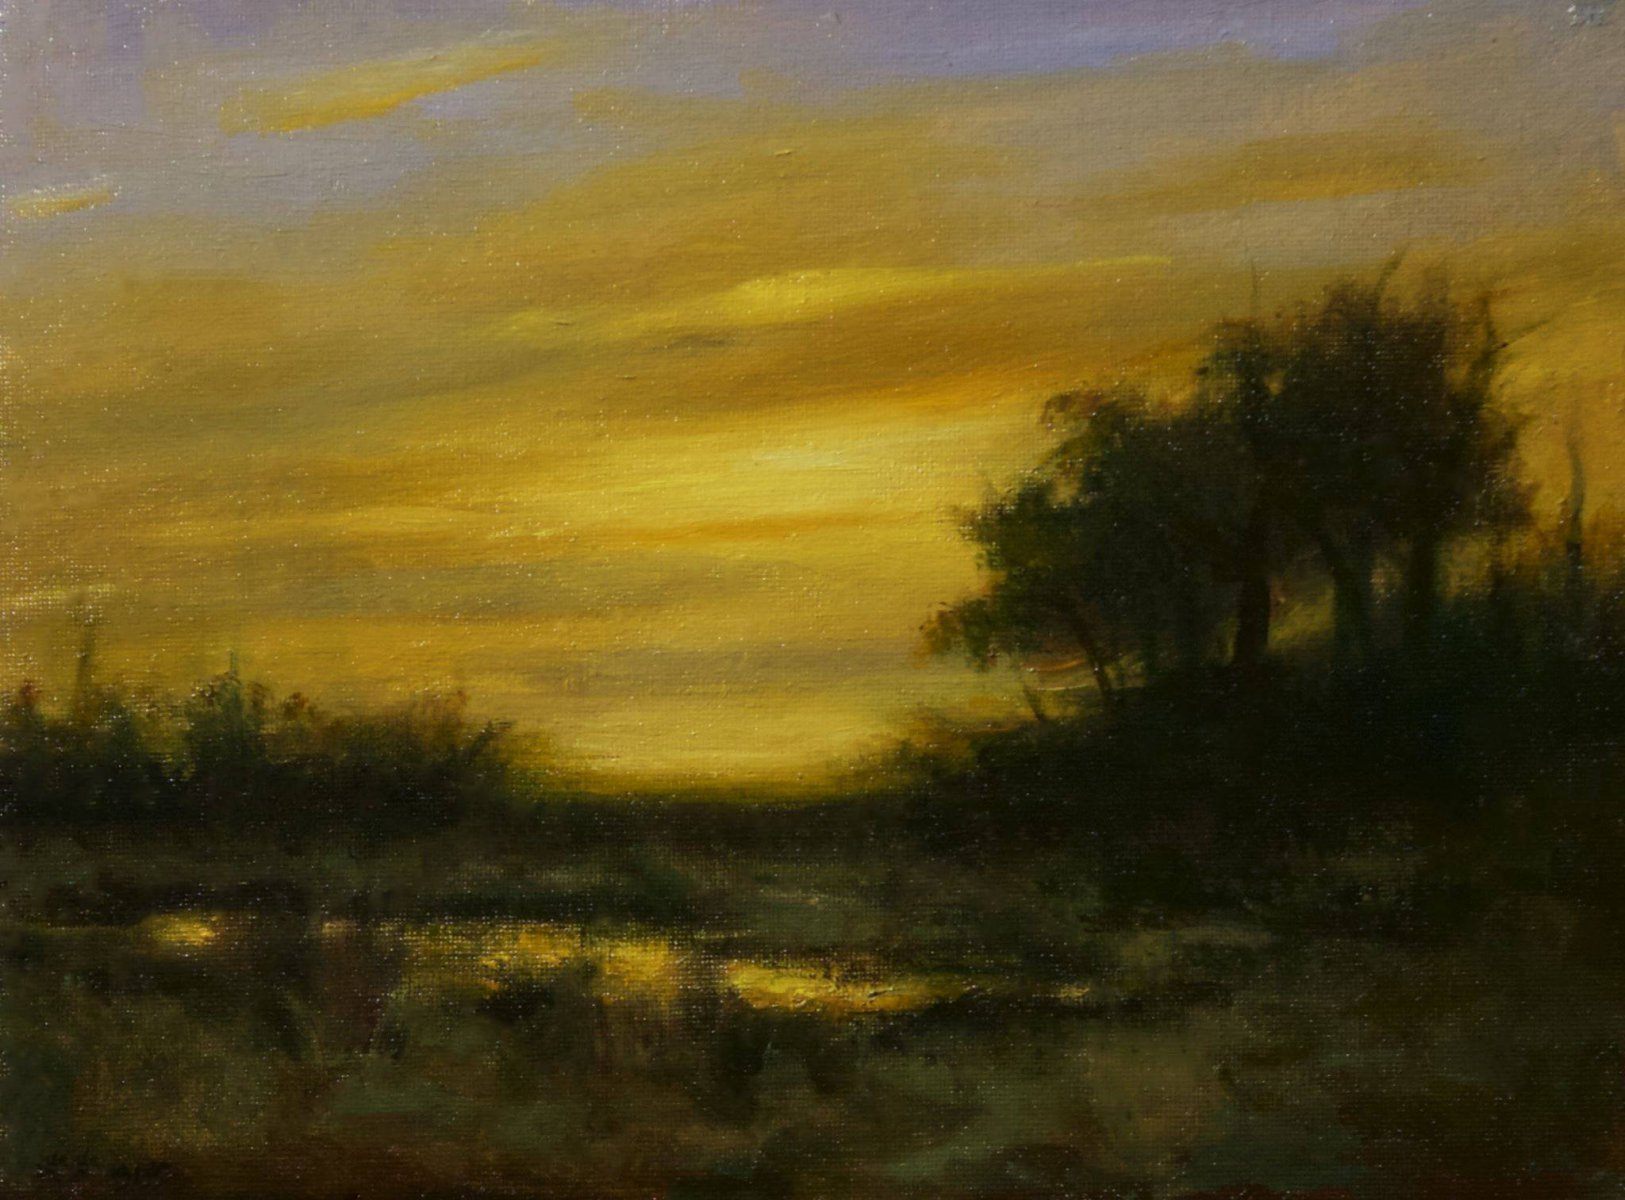 Golden Evening - Rose Freymuth-Frazier